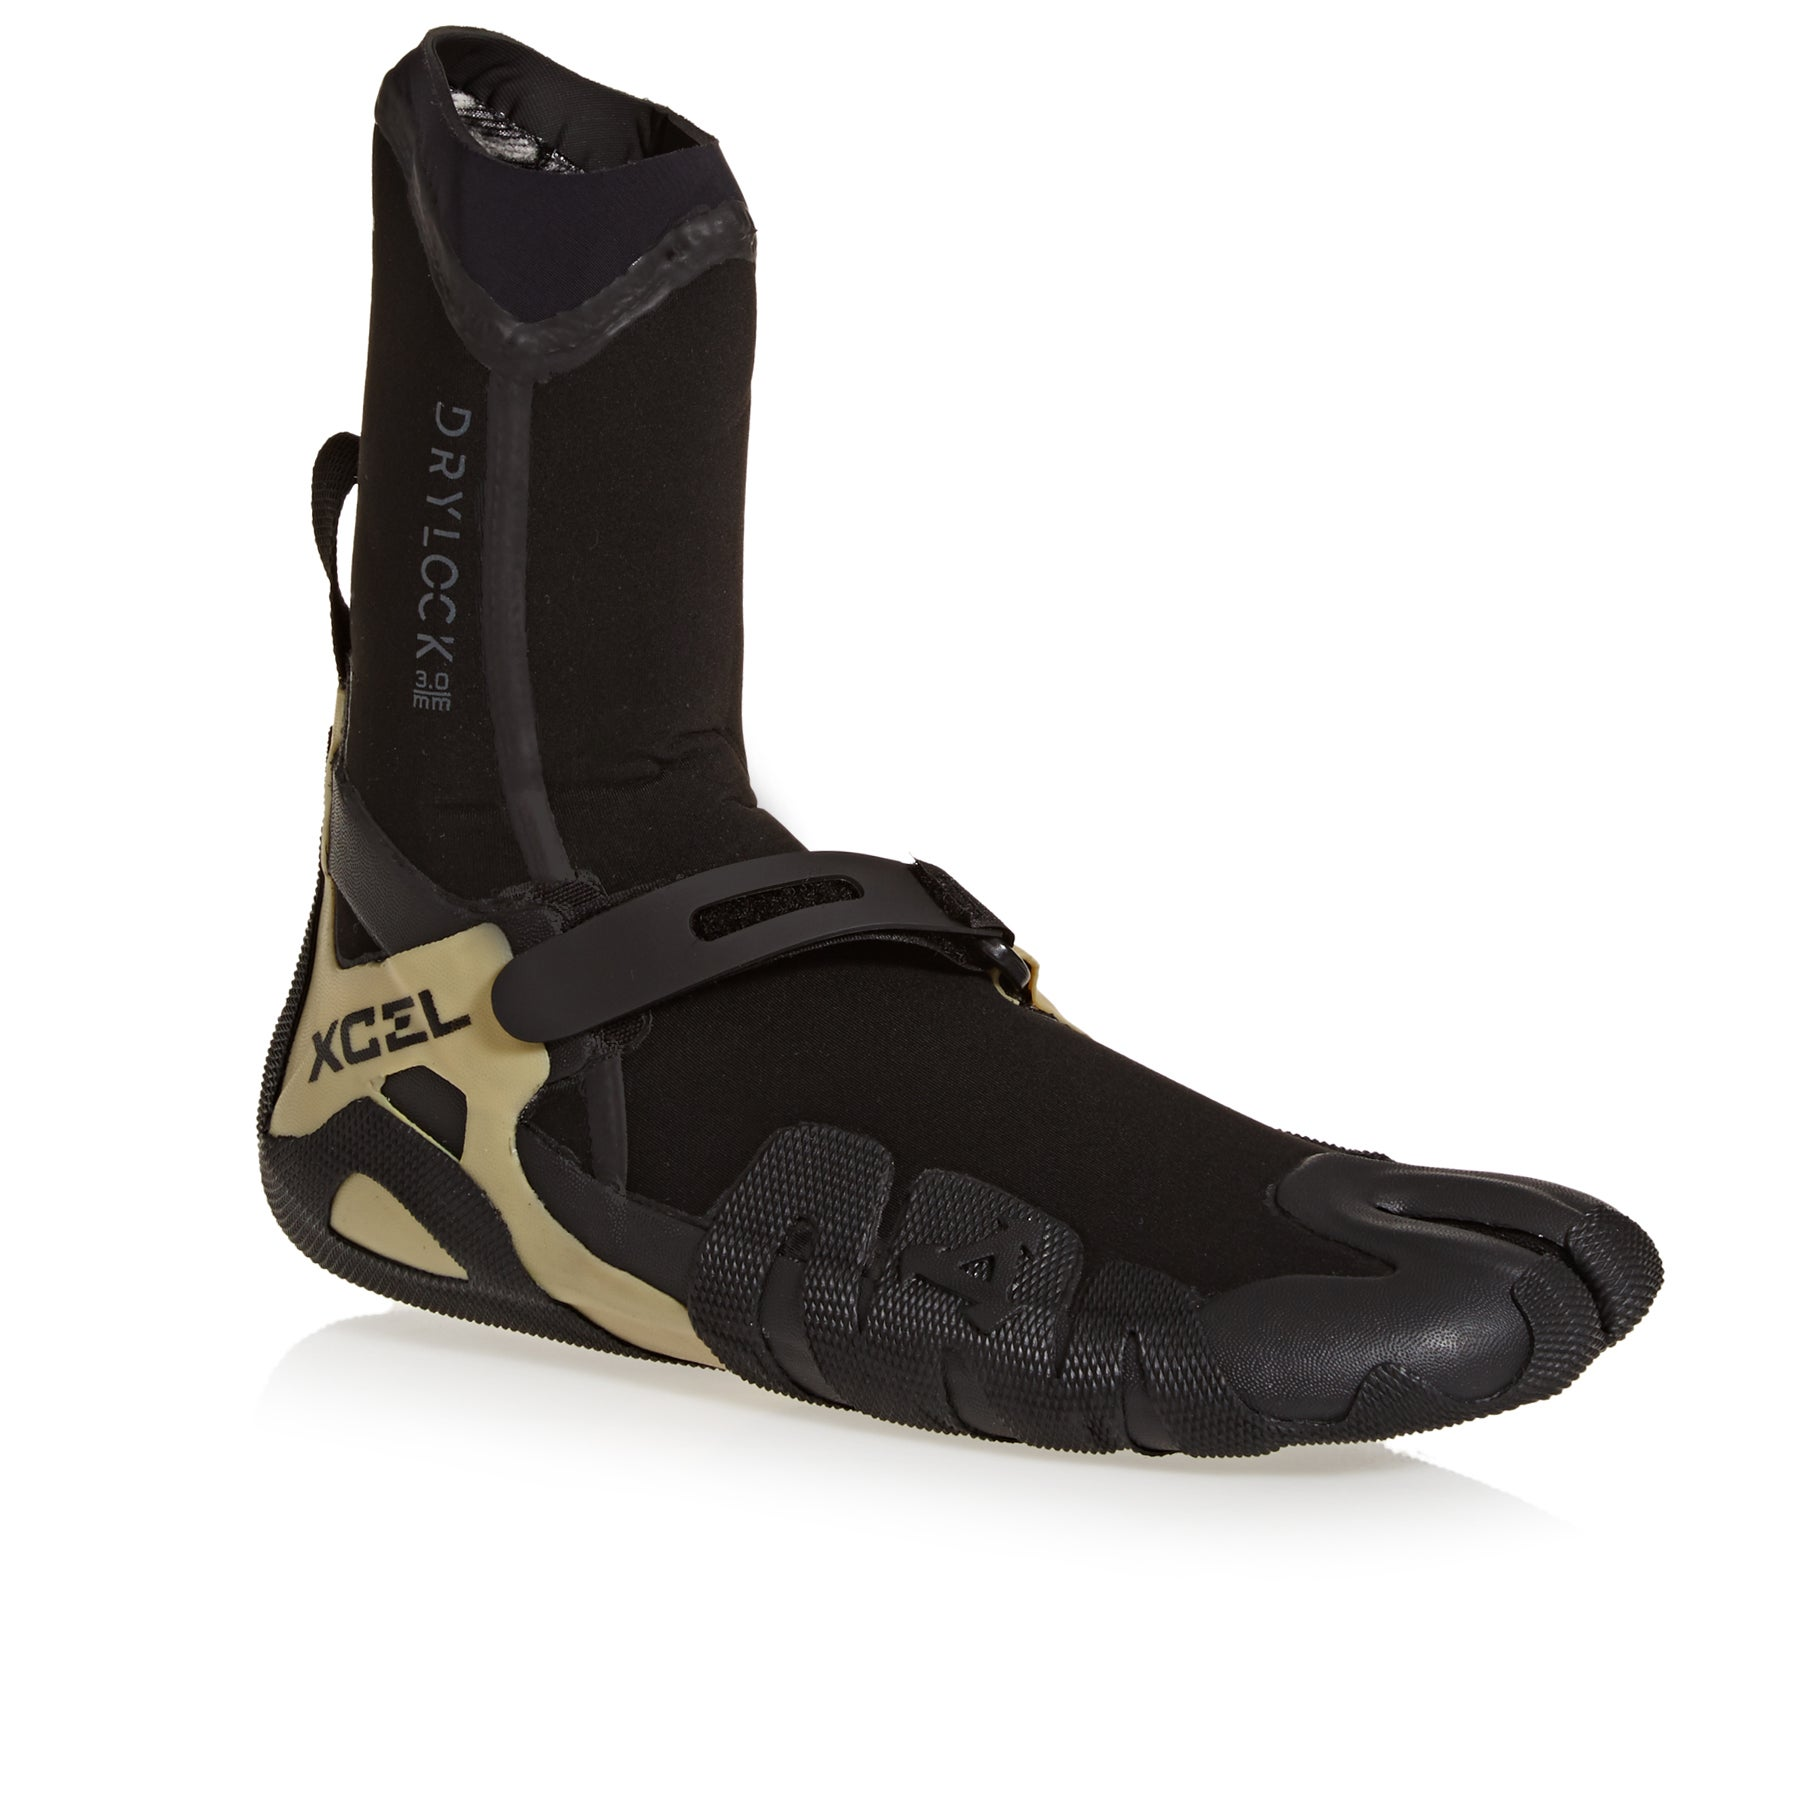 Xcel Drylock 3mm Split Toe Wetsuit Boots - Black Gum